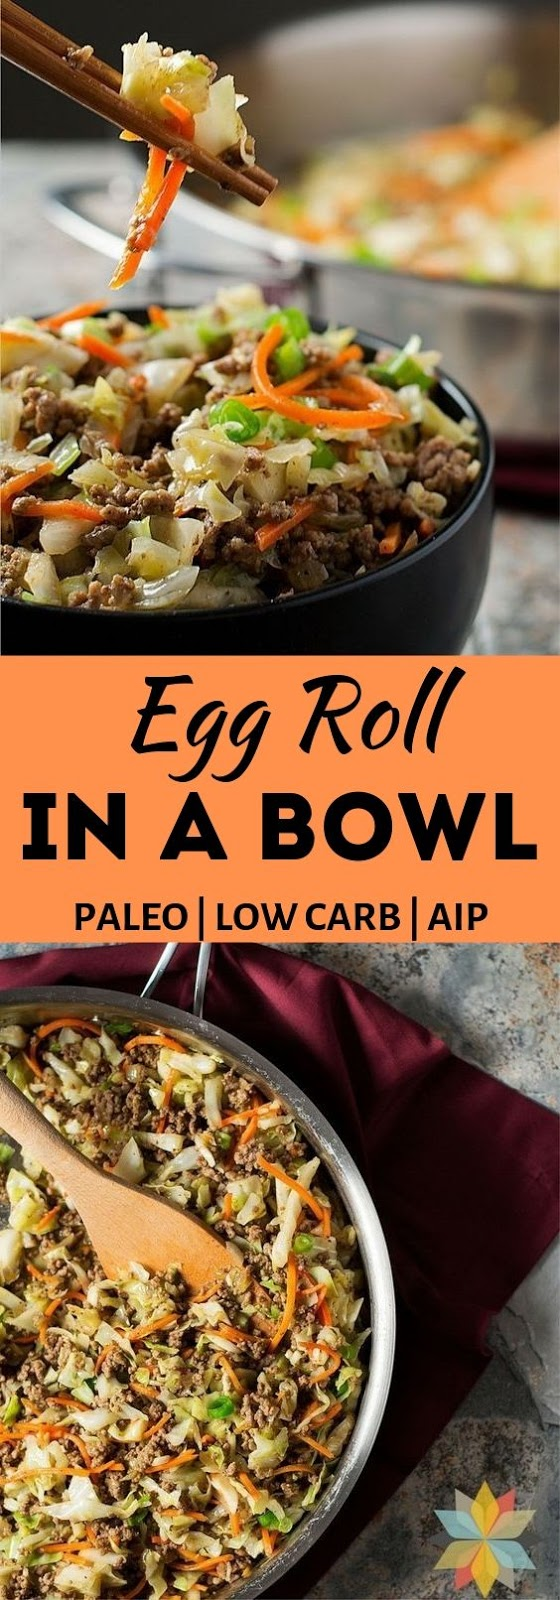 Egg Roll in a Bowl (Paleo, Keto, Low Carb, Whole30, AIP)